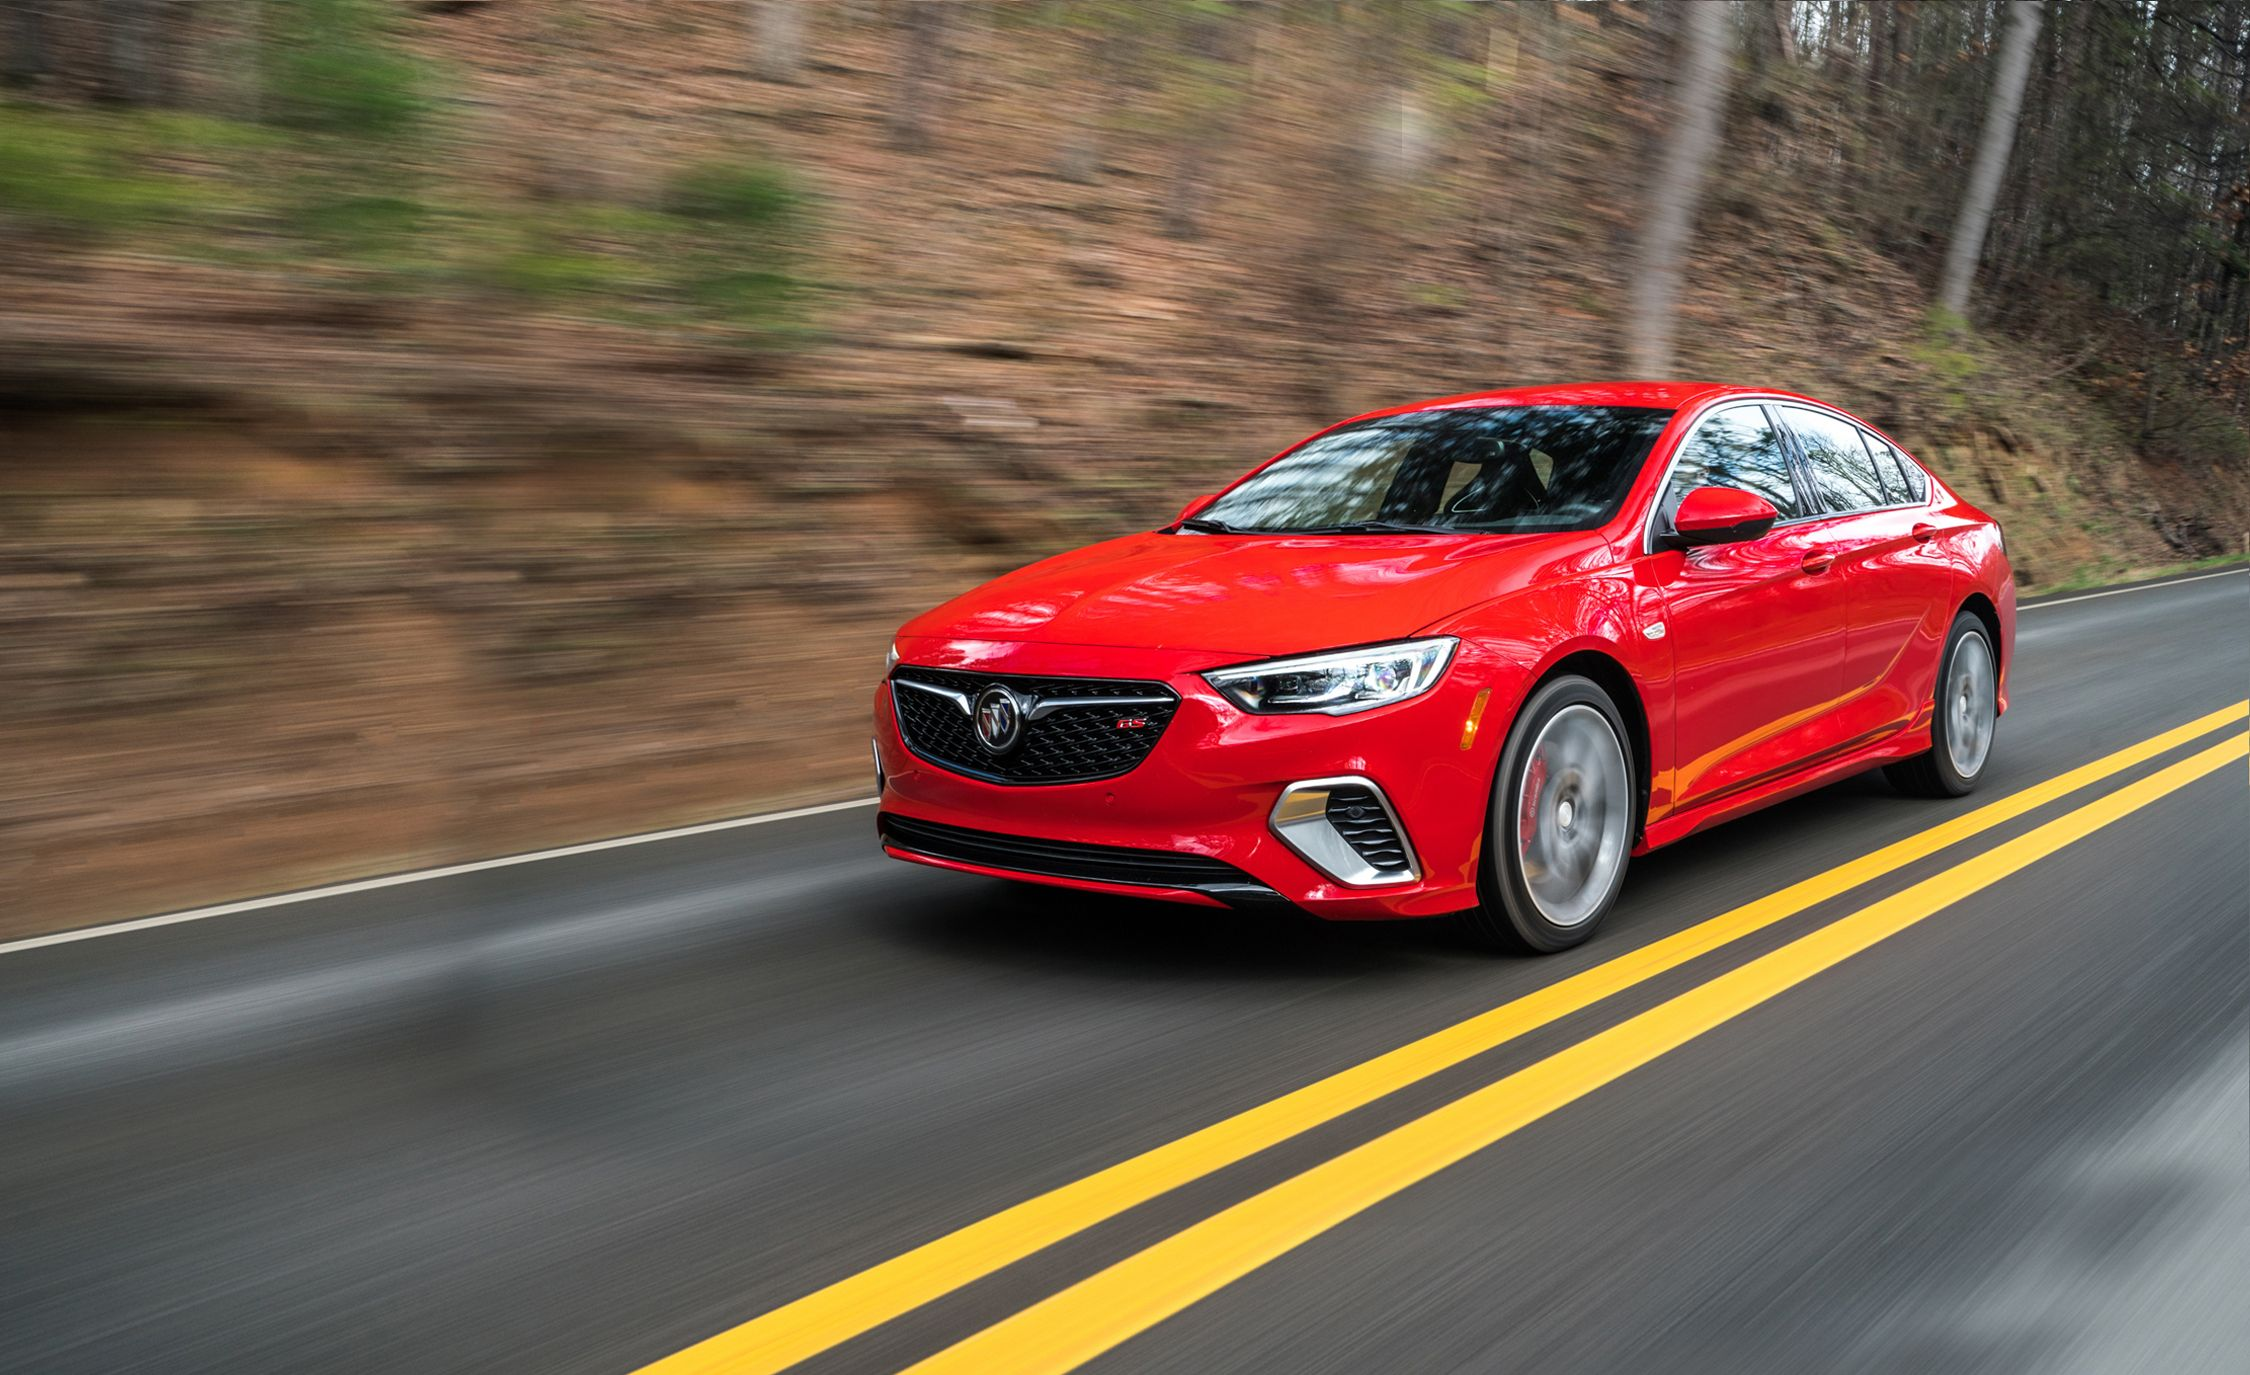 Image Result For The Buick Regal Gs For Sale First Drive